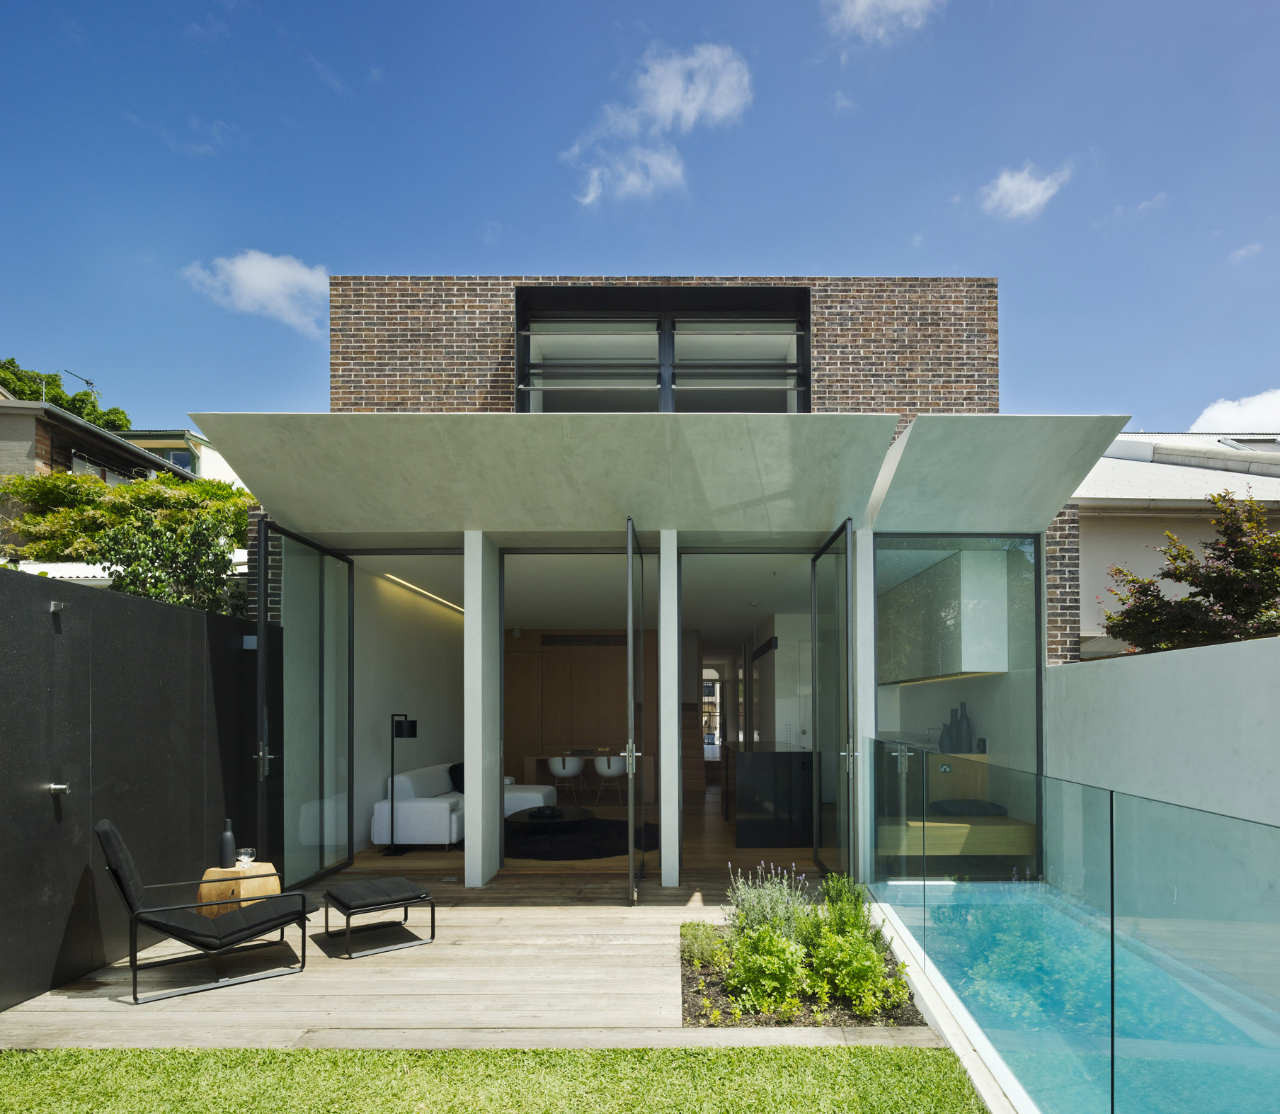 Paddington House / Nobbs Radford Architects, © Peter Bennetts